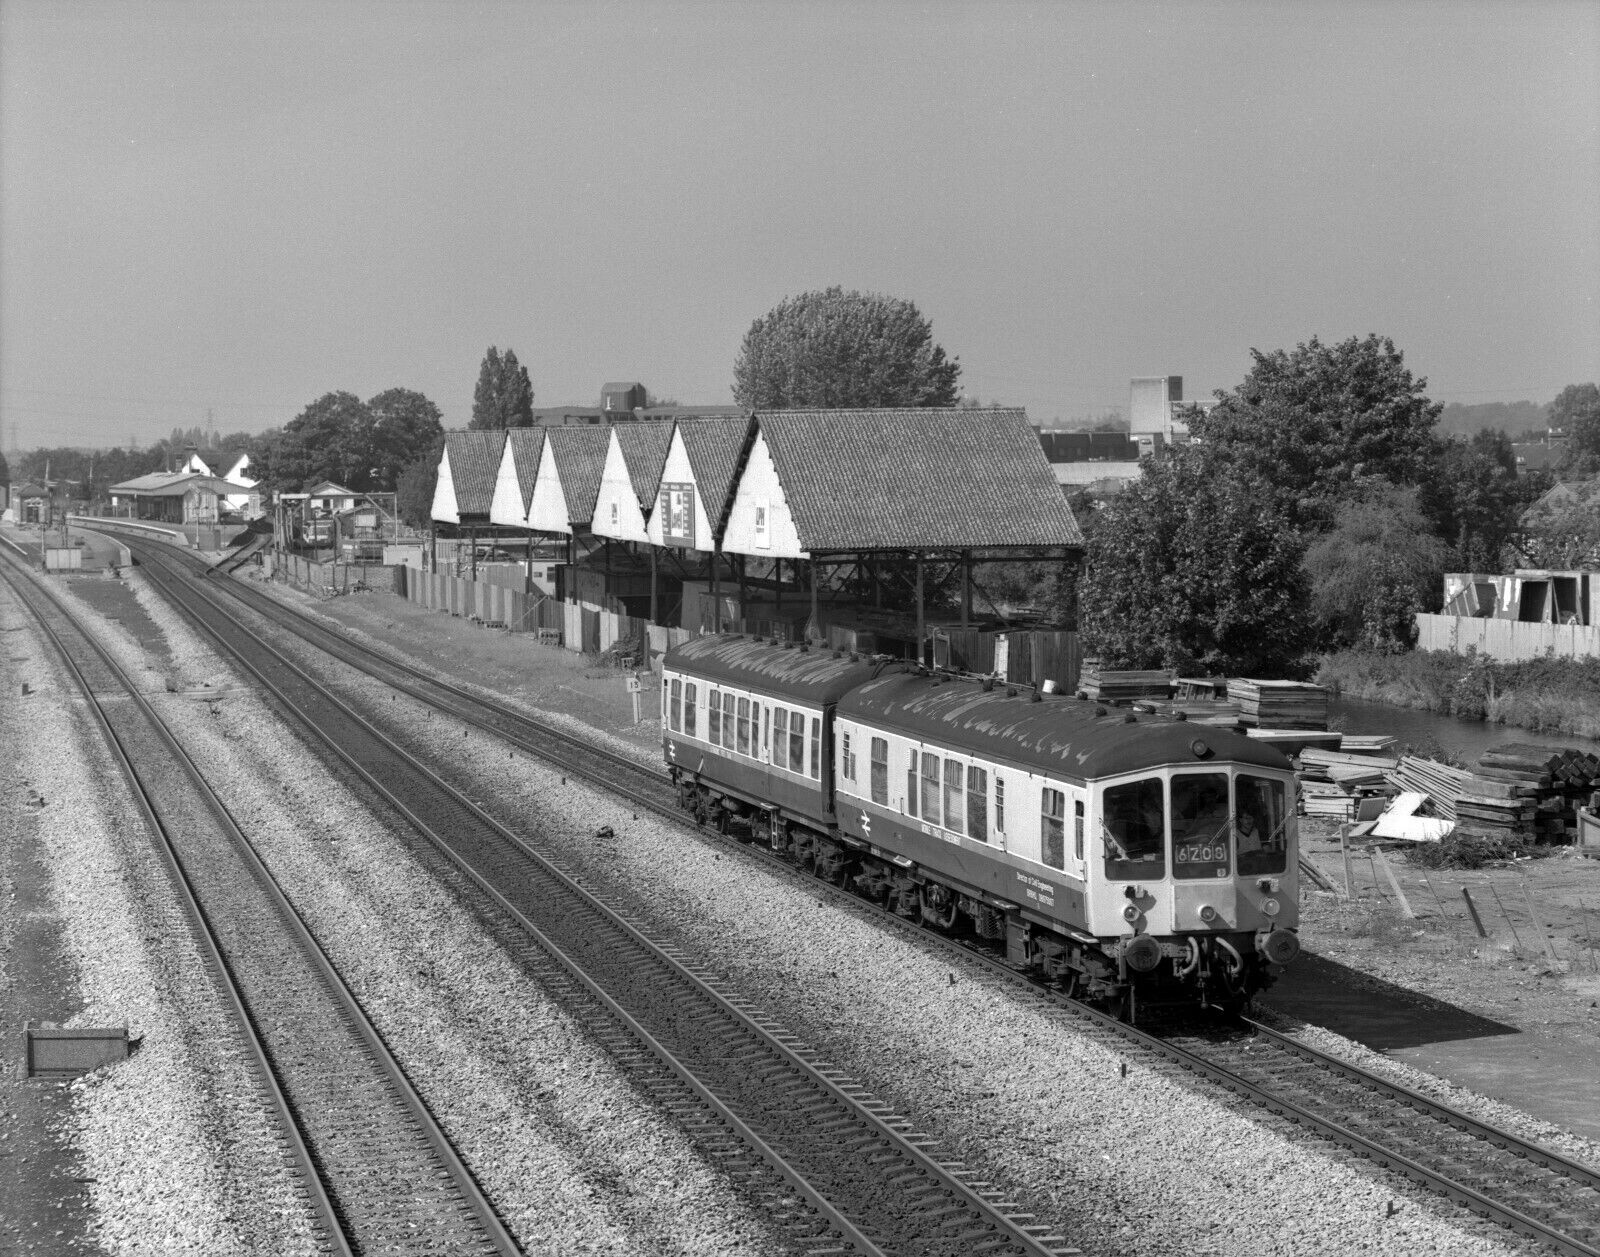 6x7cm railway neg b/w ultrasonic test train  west drayton 7/9/88 to london